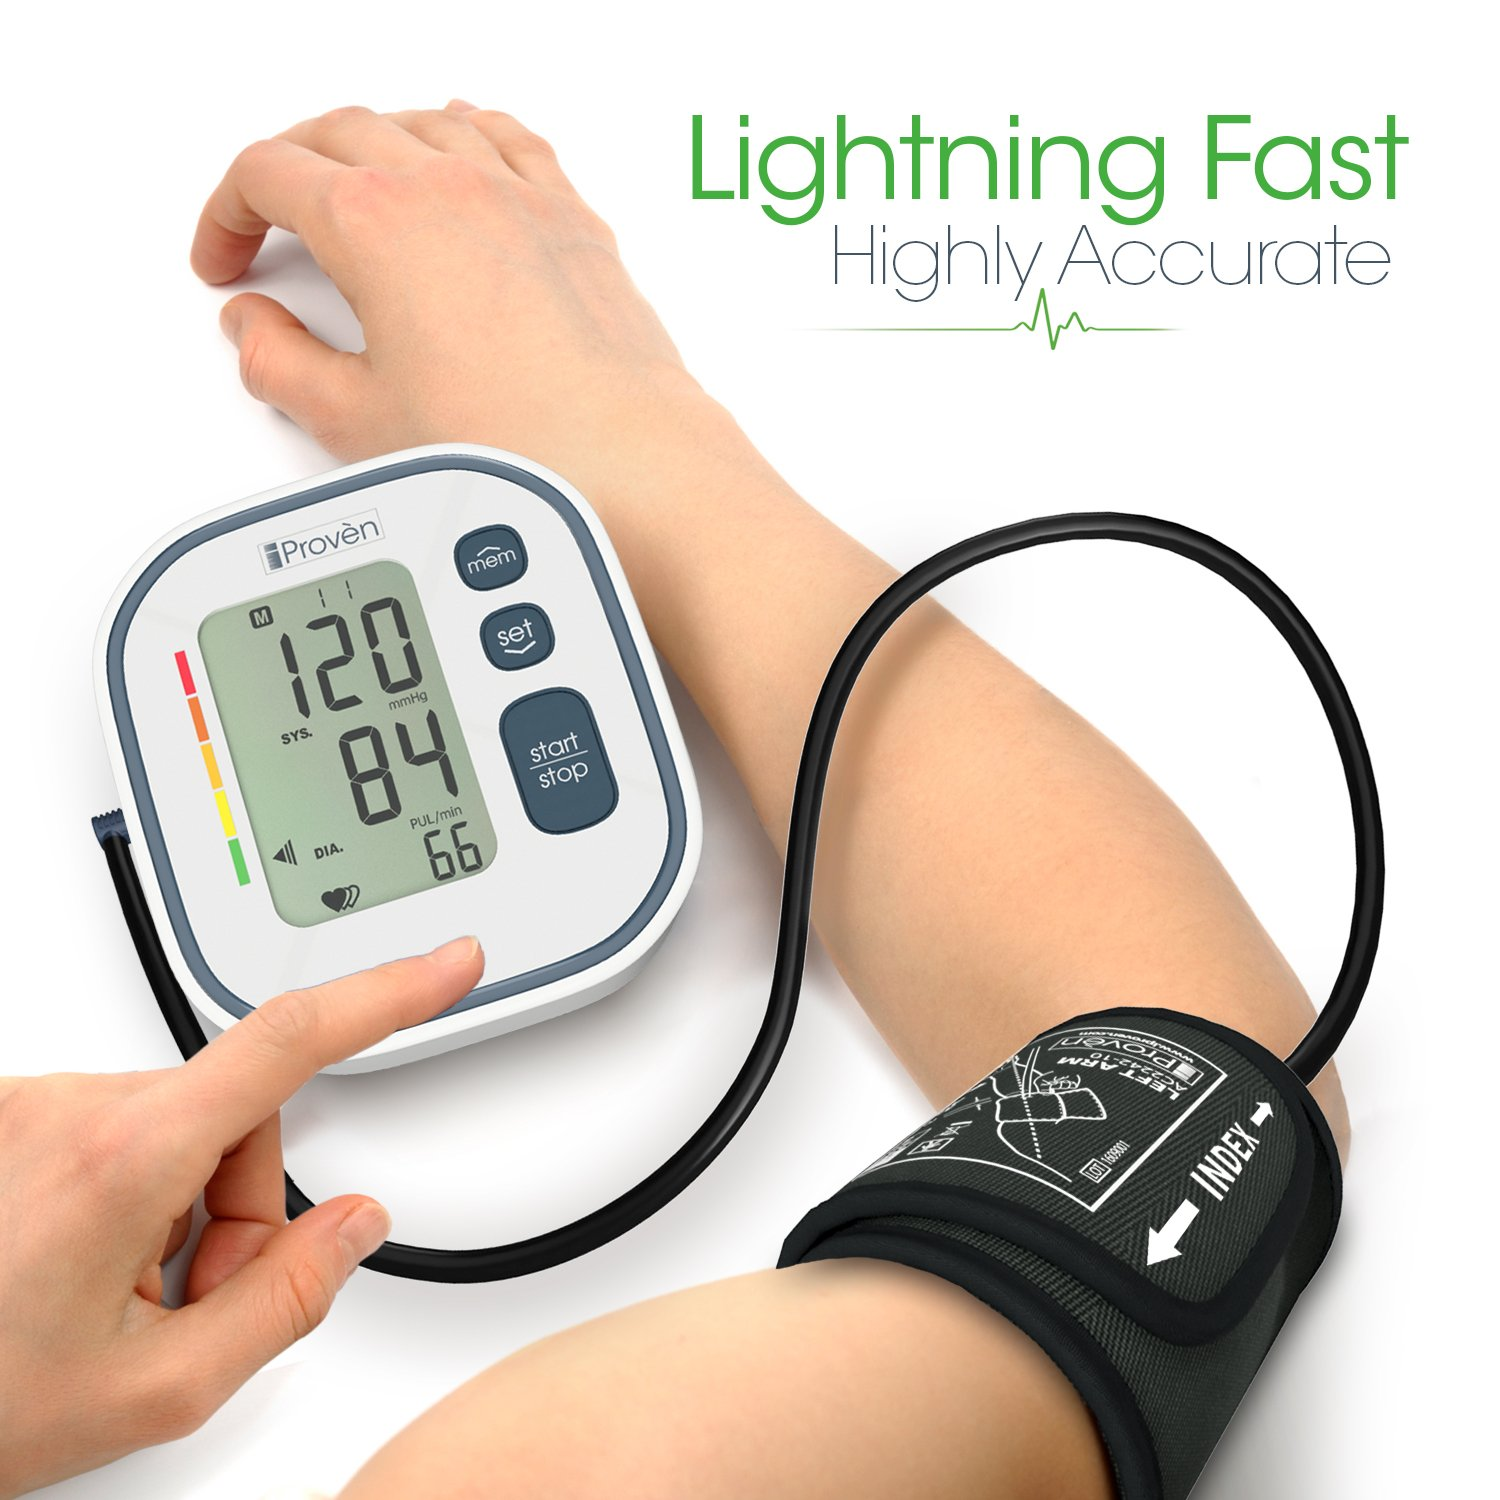 Digital Automatic Blood Pressure Monitor - Upper Arm Cuff - Large Screen - Accurate & Fast Reading Electronic Machine - Top Rated BP Monitors and Cuffs - FDA Approved - iProvèn BPM-634 - for Home Use by iProvèn (Image #3)